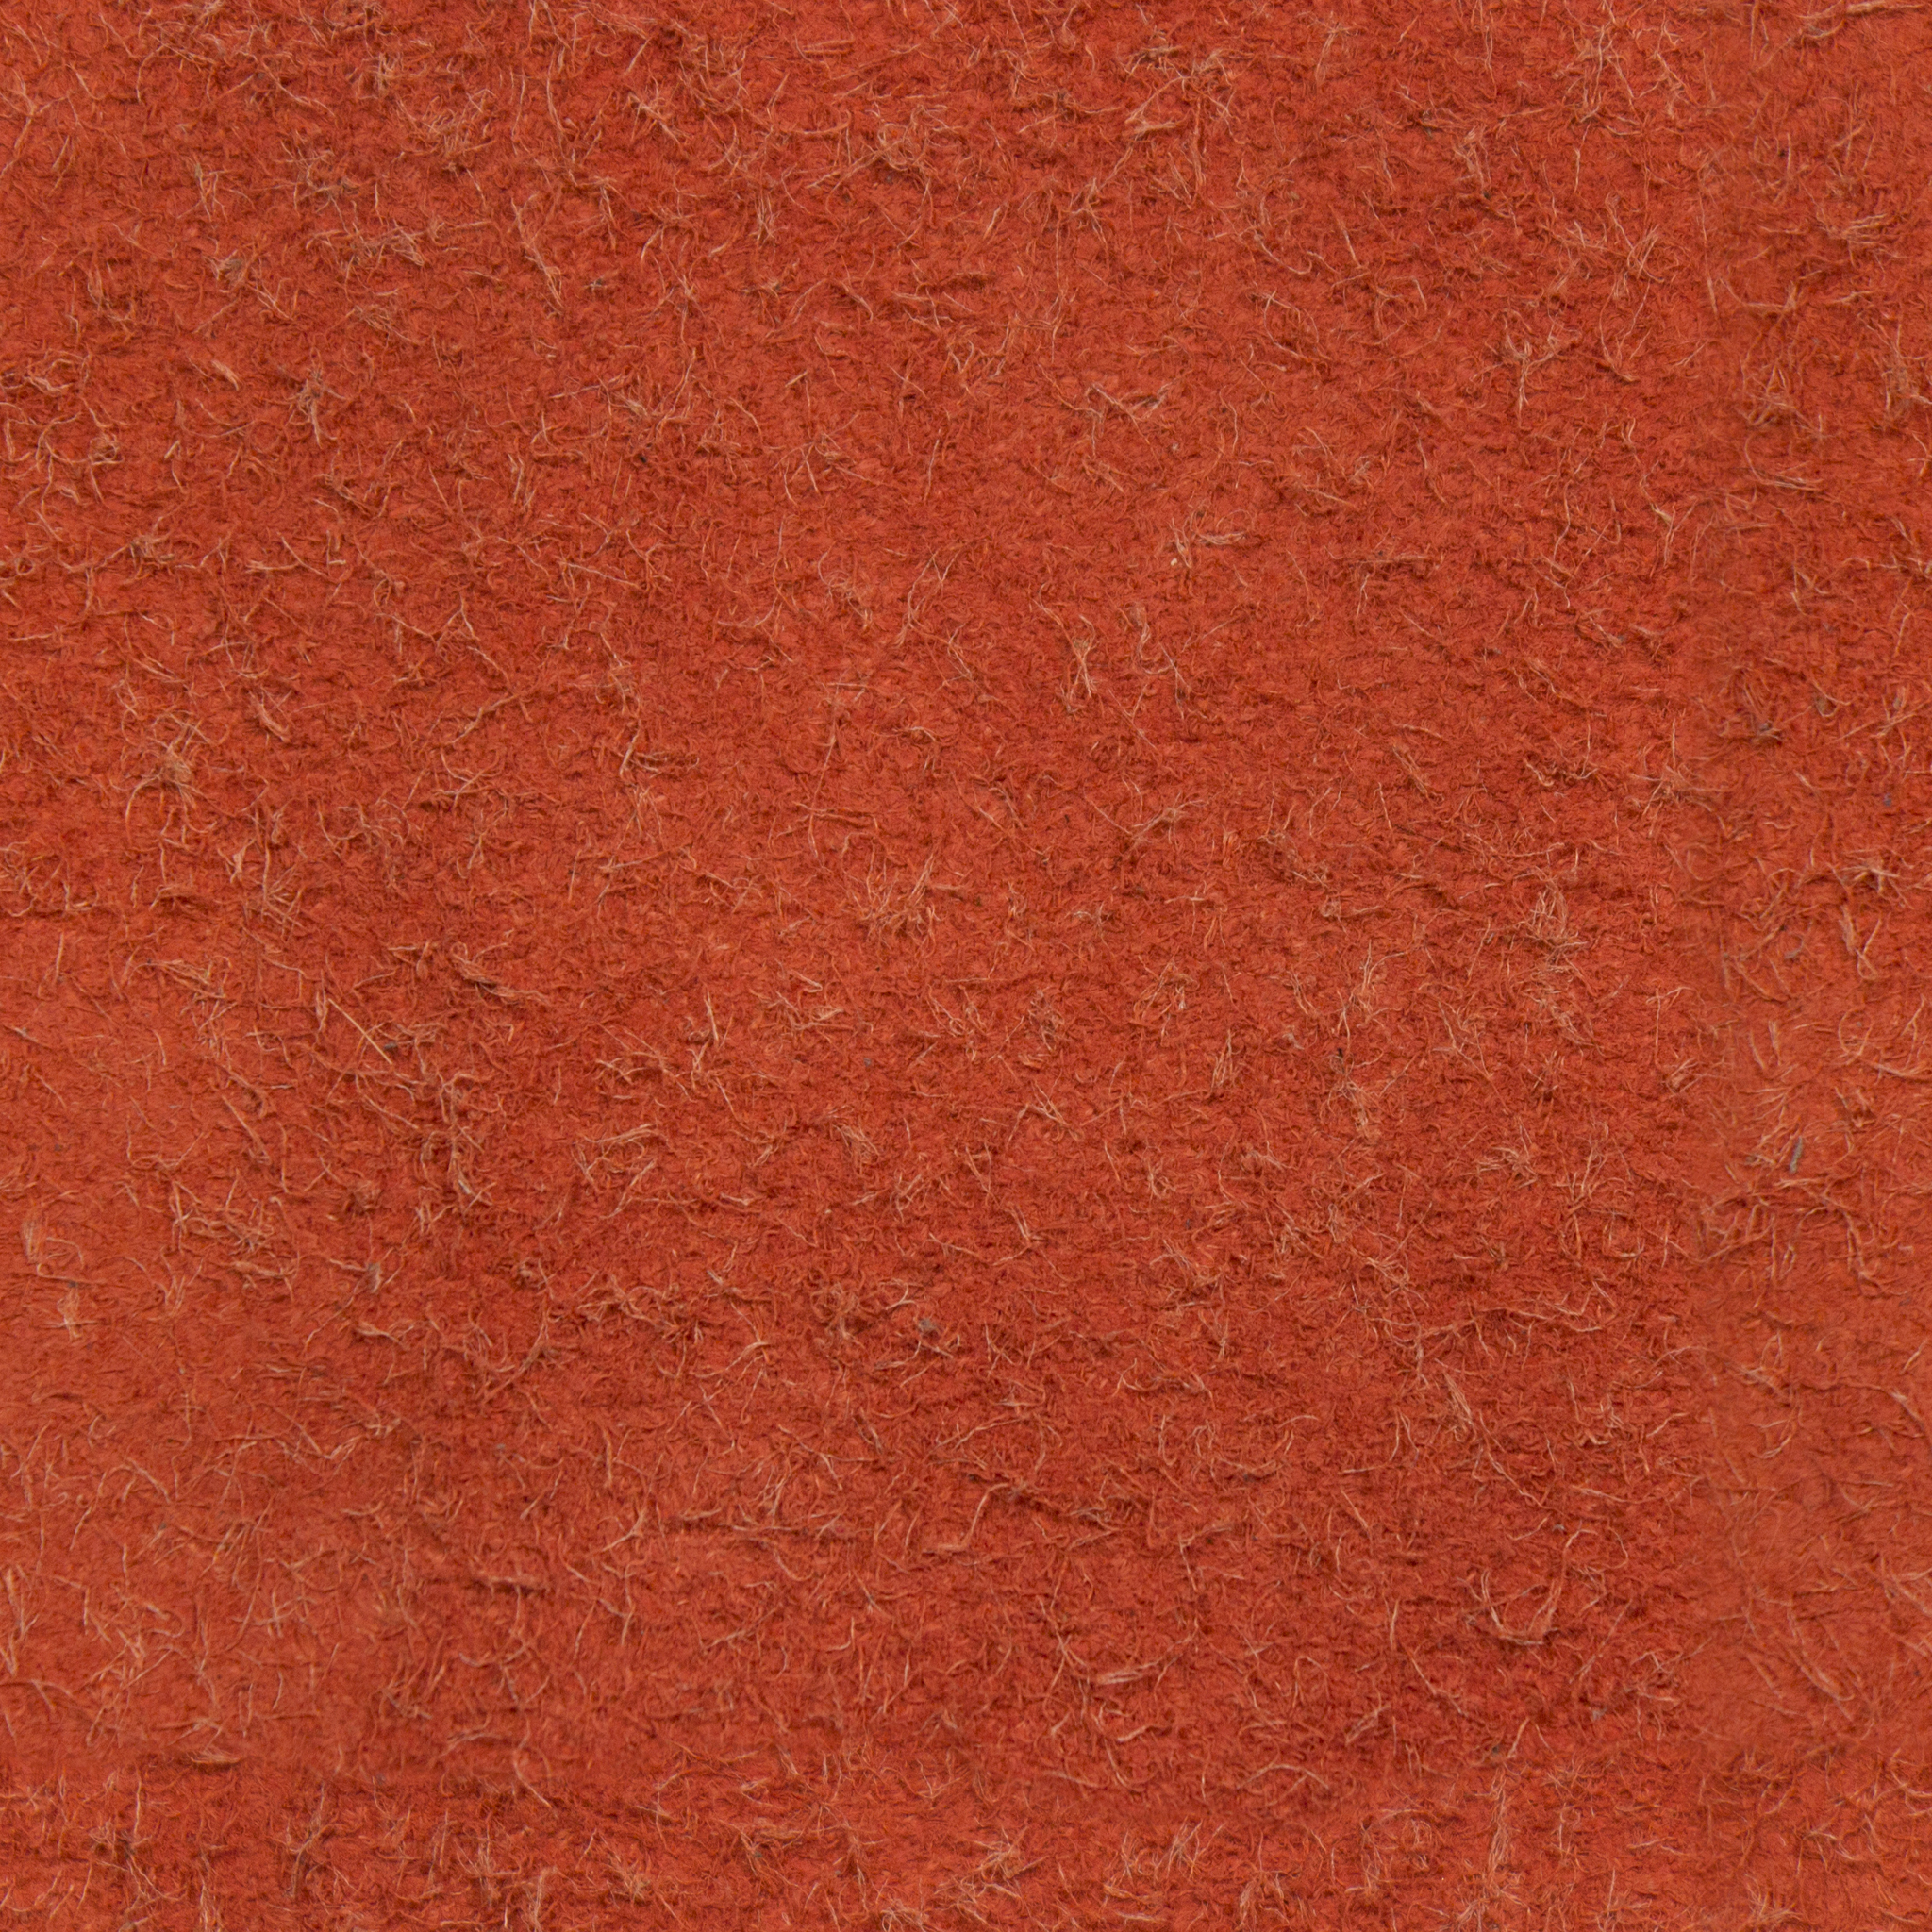 Red Nubuck Leather.jpg